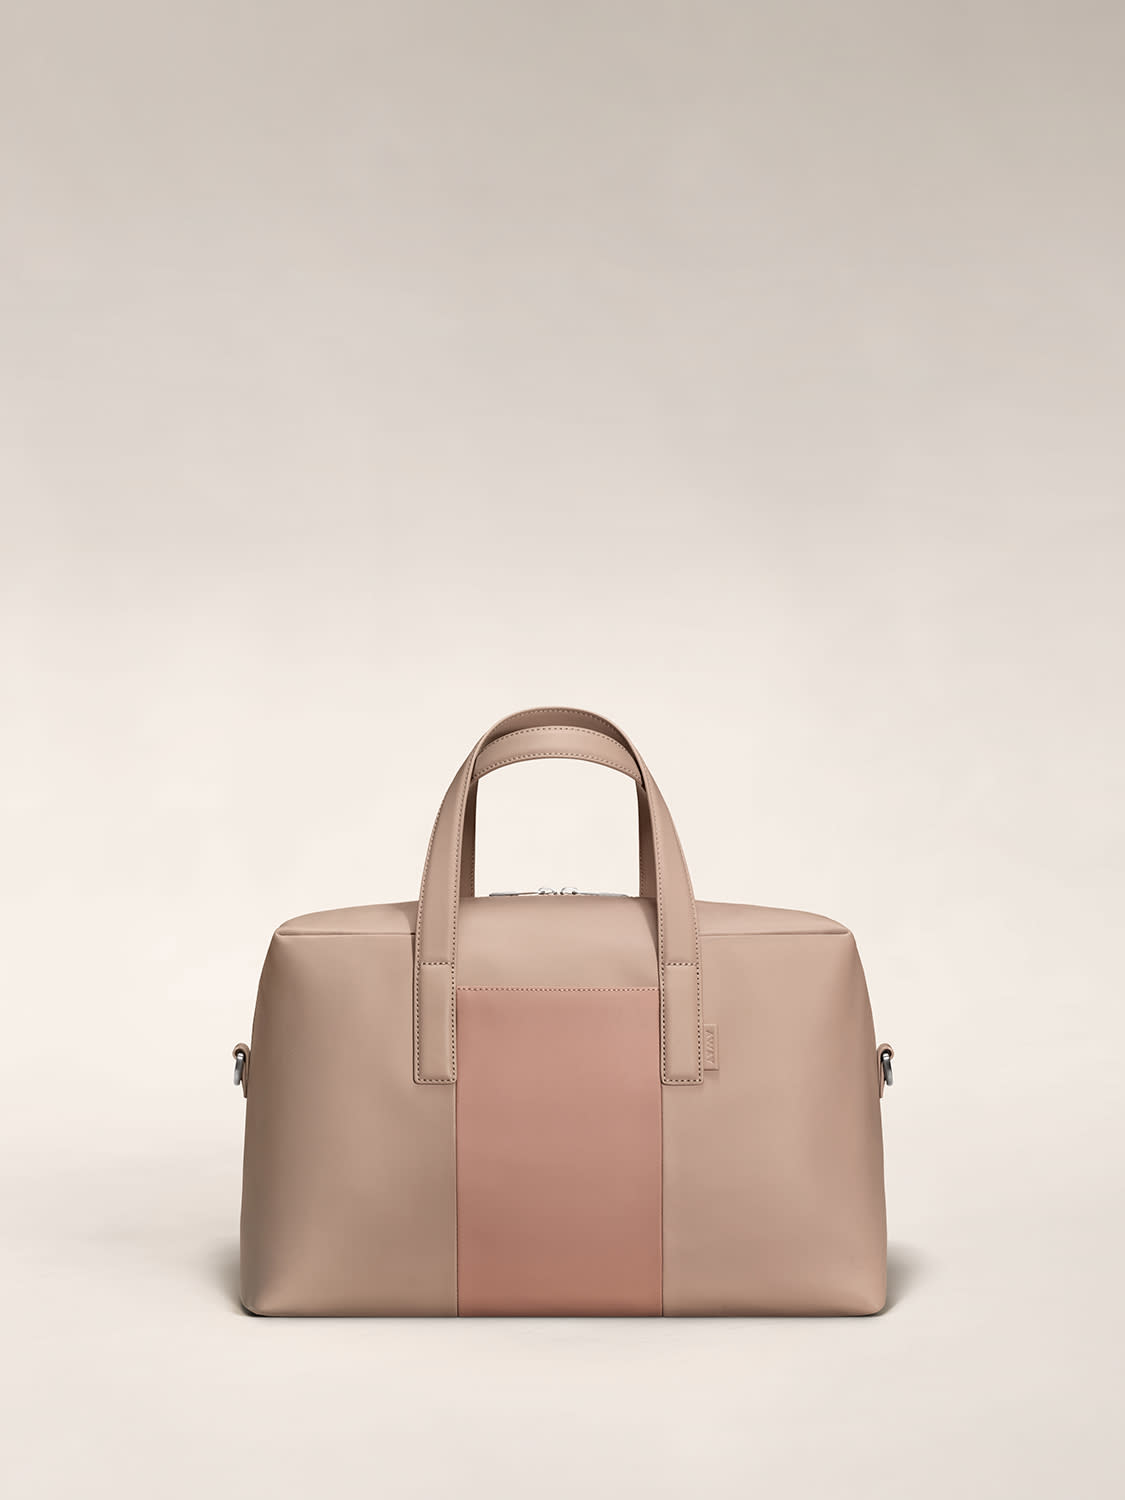 The front view of The Everywhere Bag in Dusty Rose/Taupe